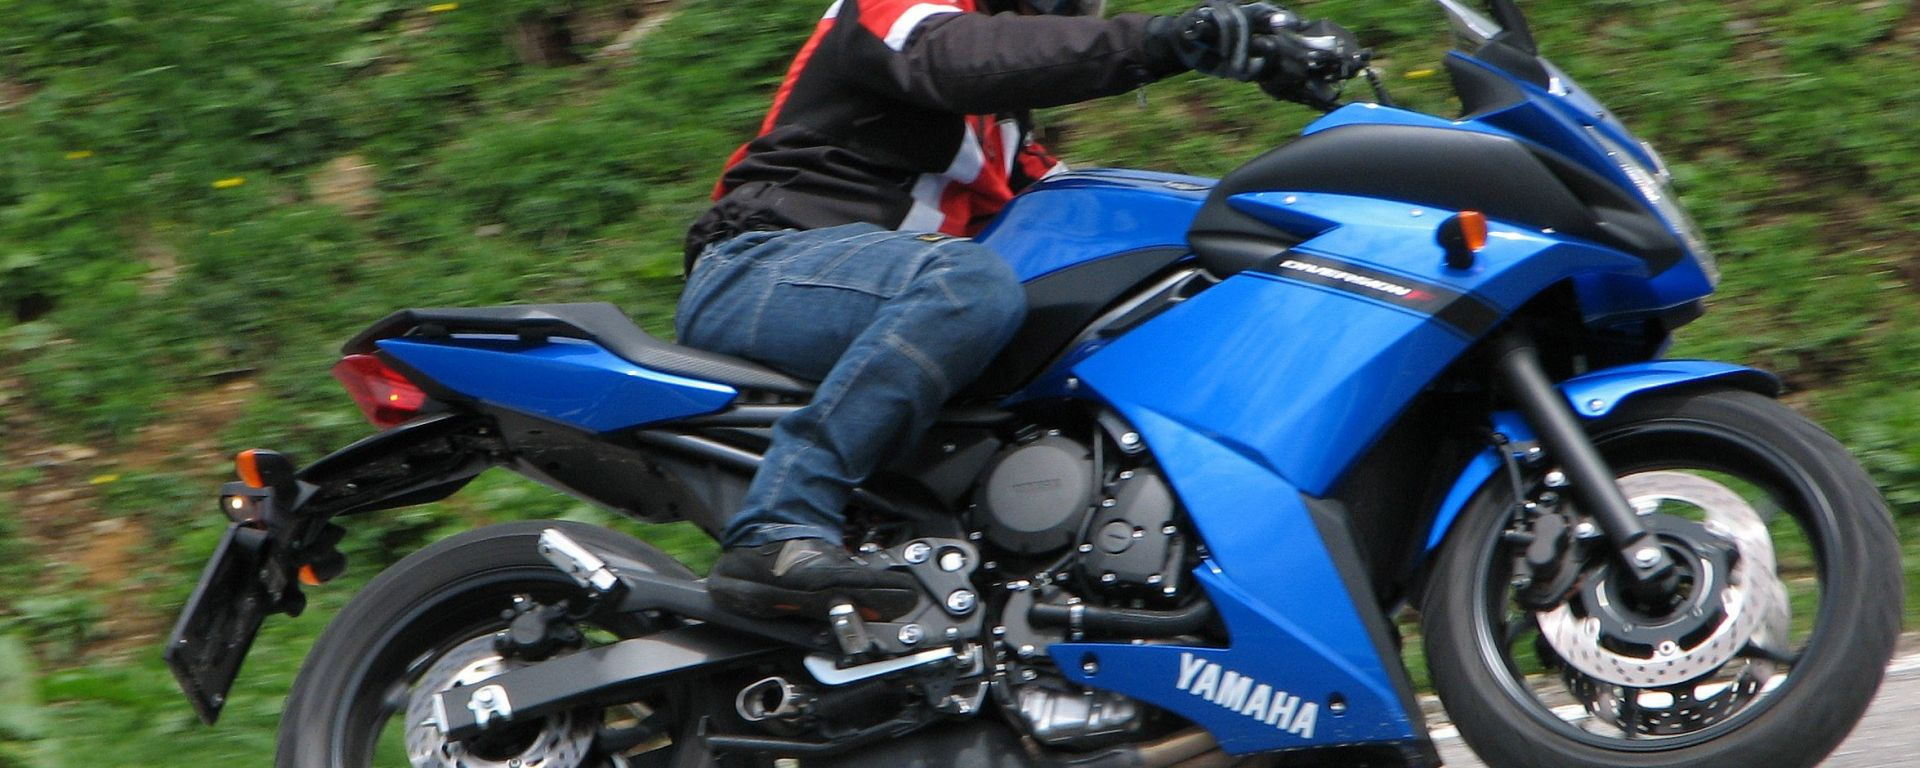 Yamaha Diversion F